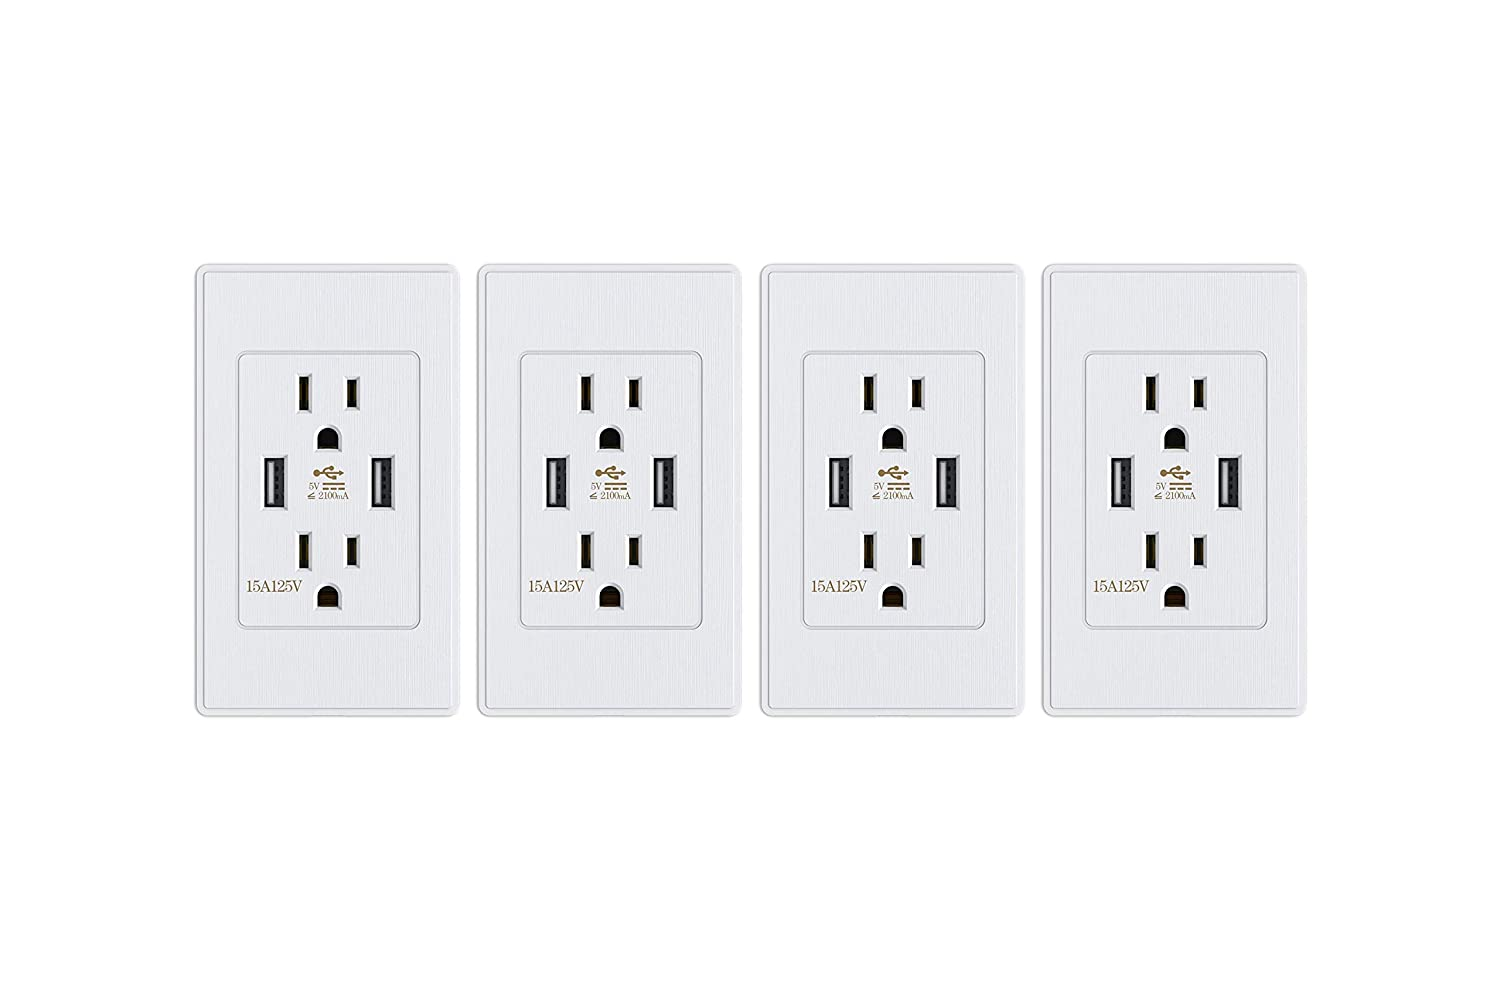 Wall mounted power strip with multiple receptacles